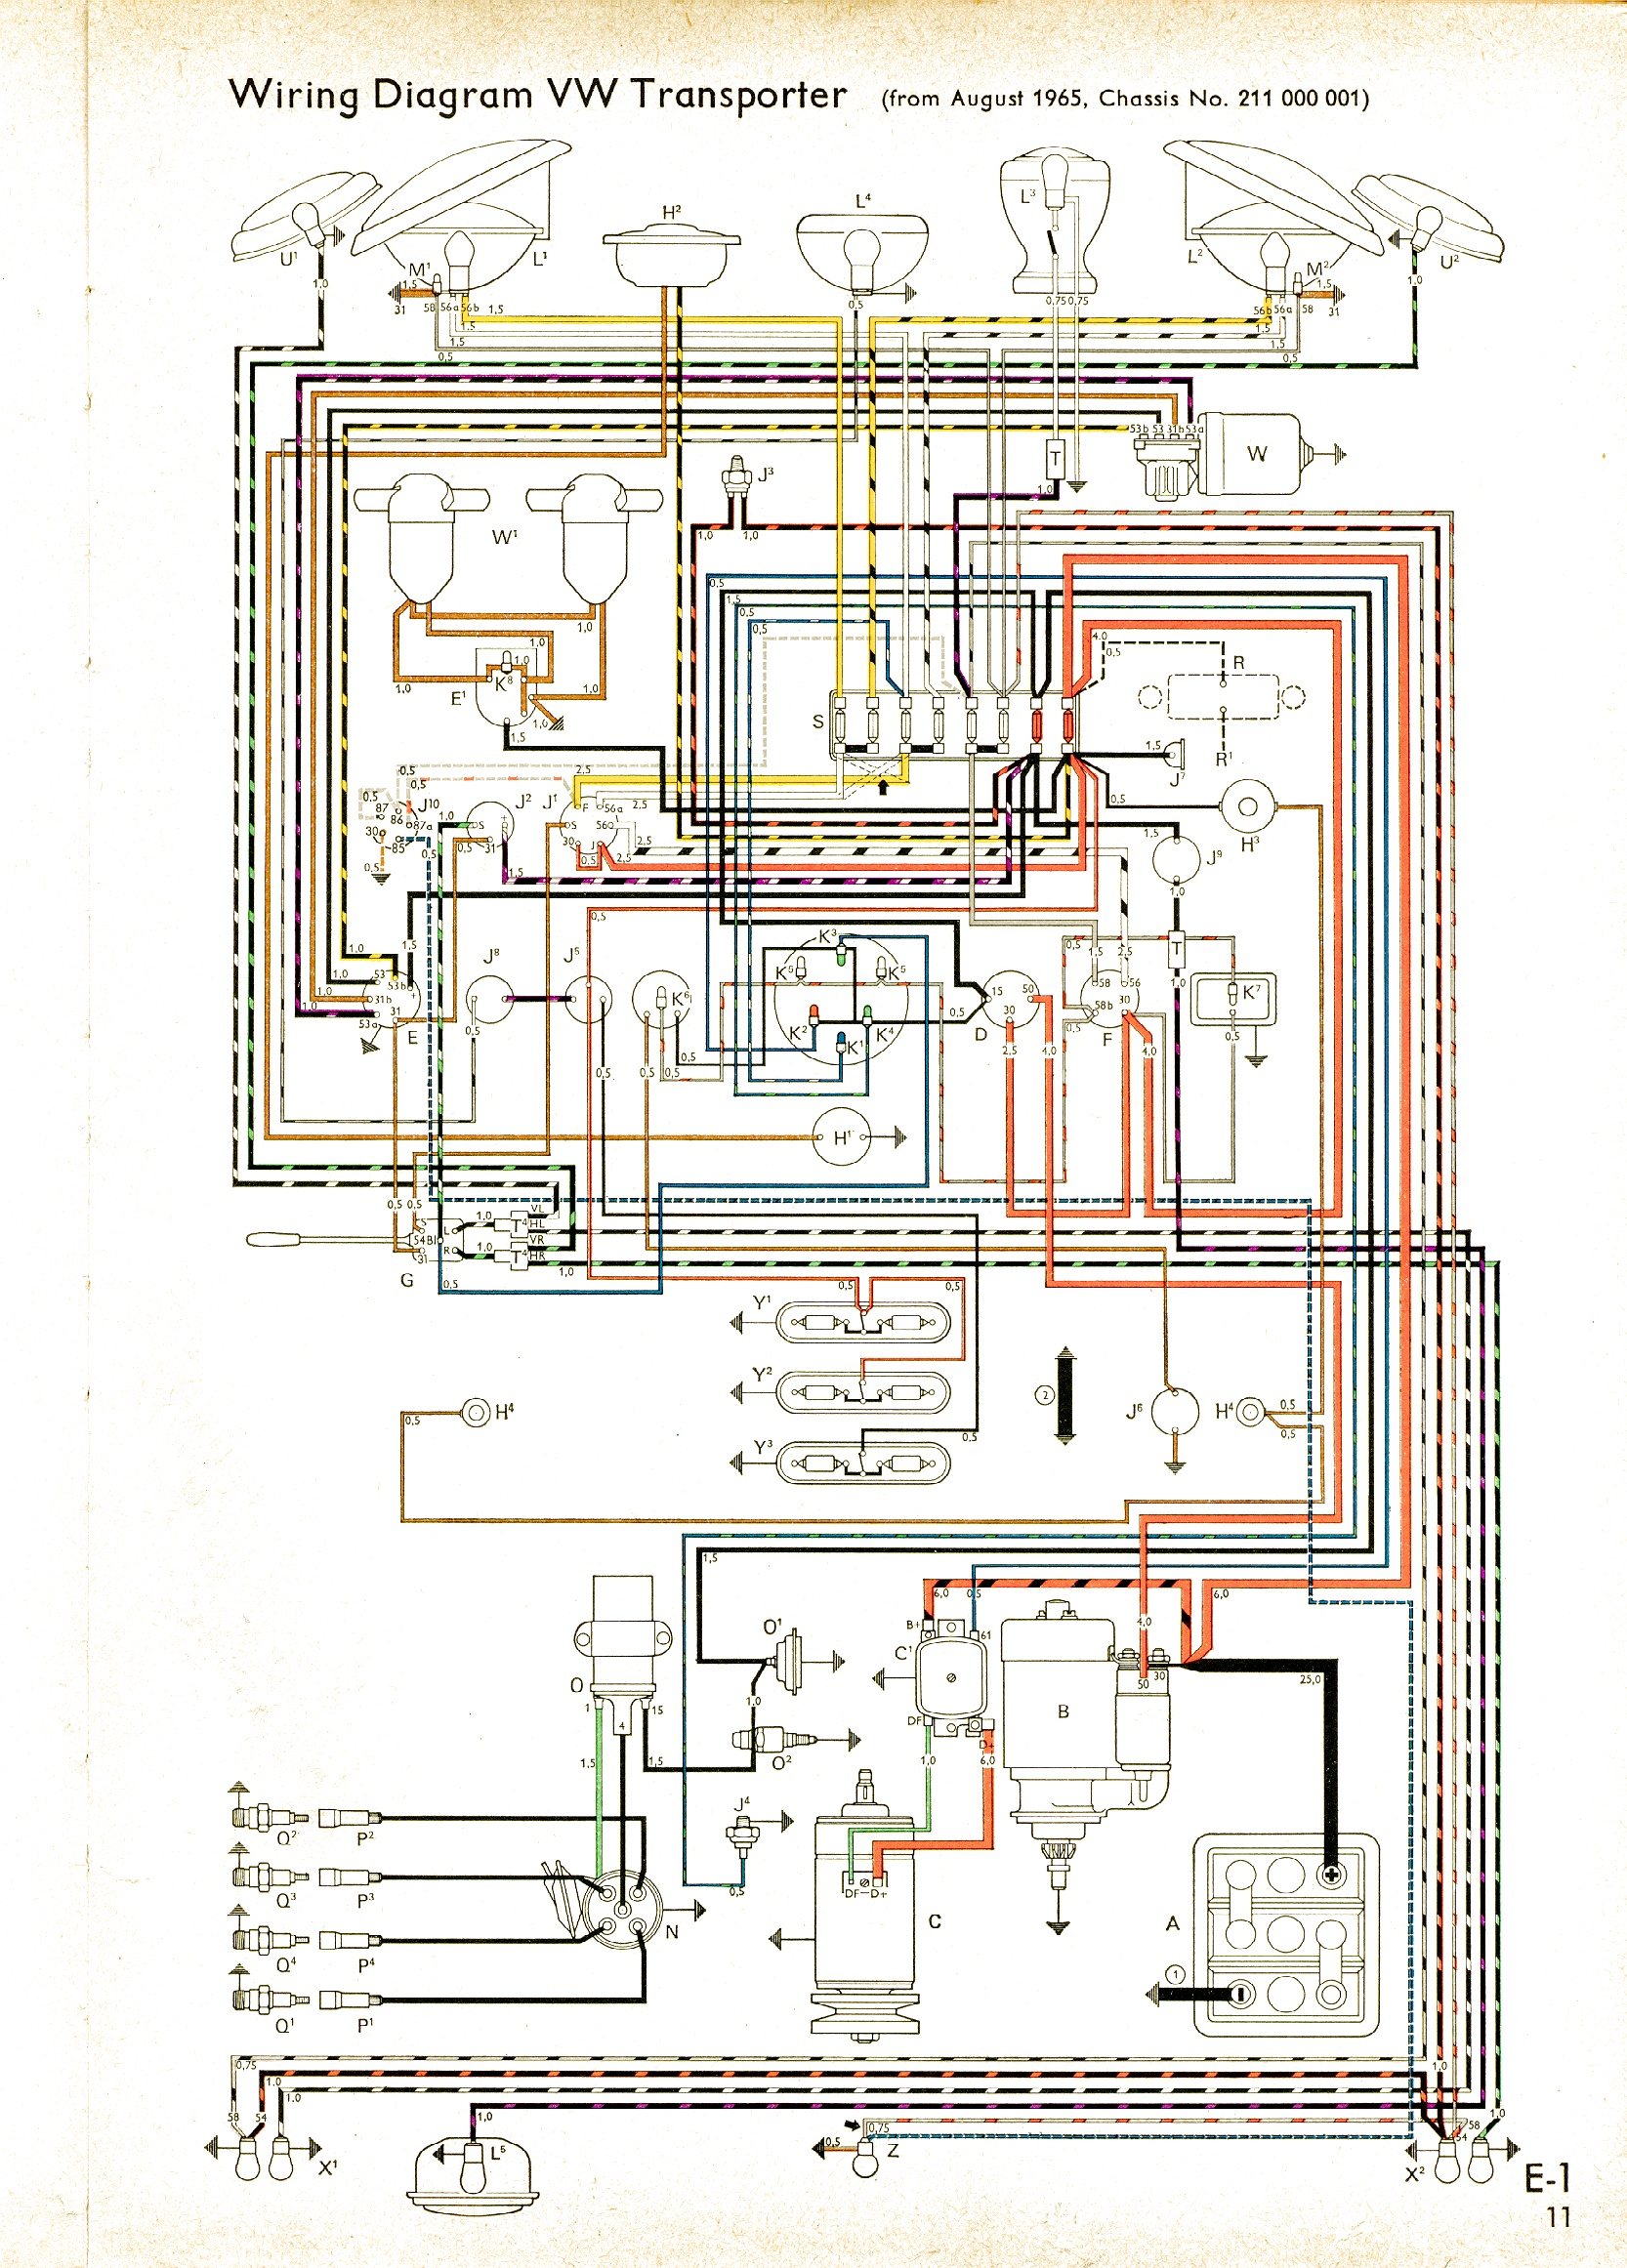 bus 65 wiring diagram for 1963 vw bus readingrat net 1978 vw wiring diagram at n-0.co